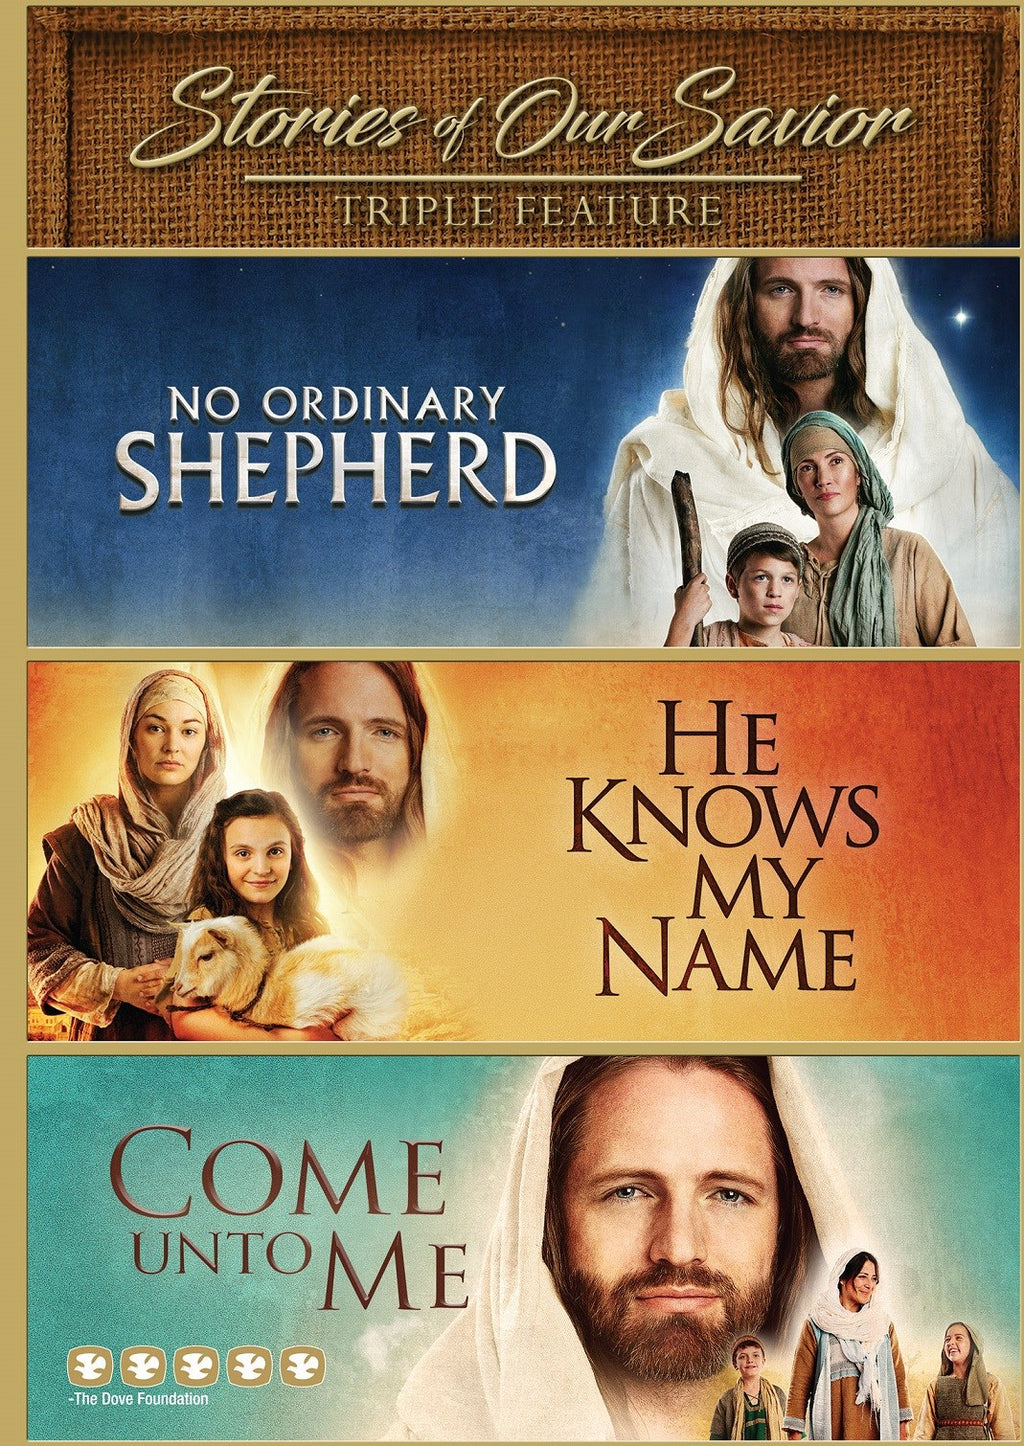 DVD-Stories of Our Savior - Triple Feature